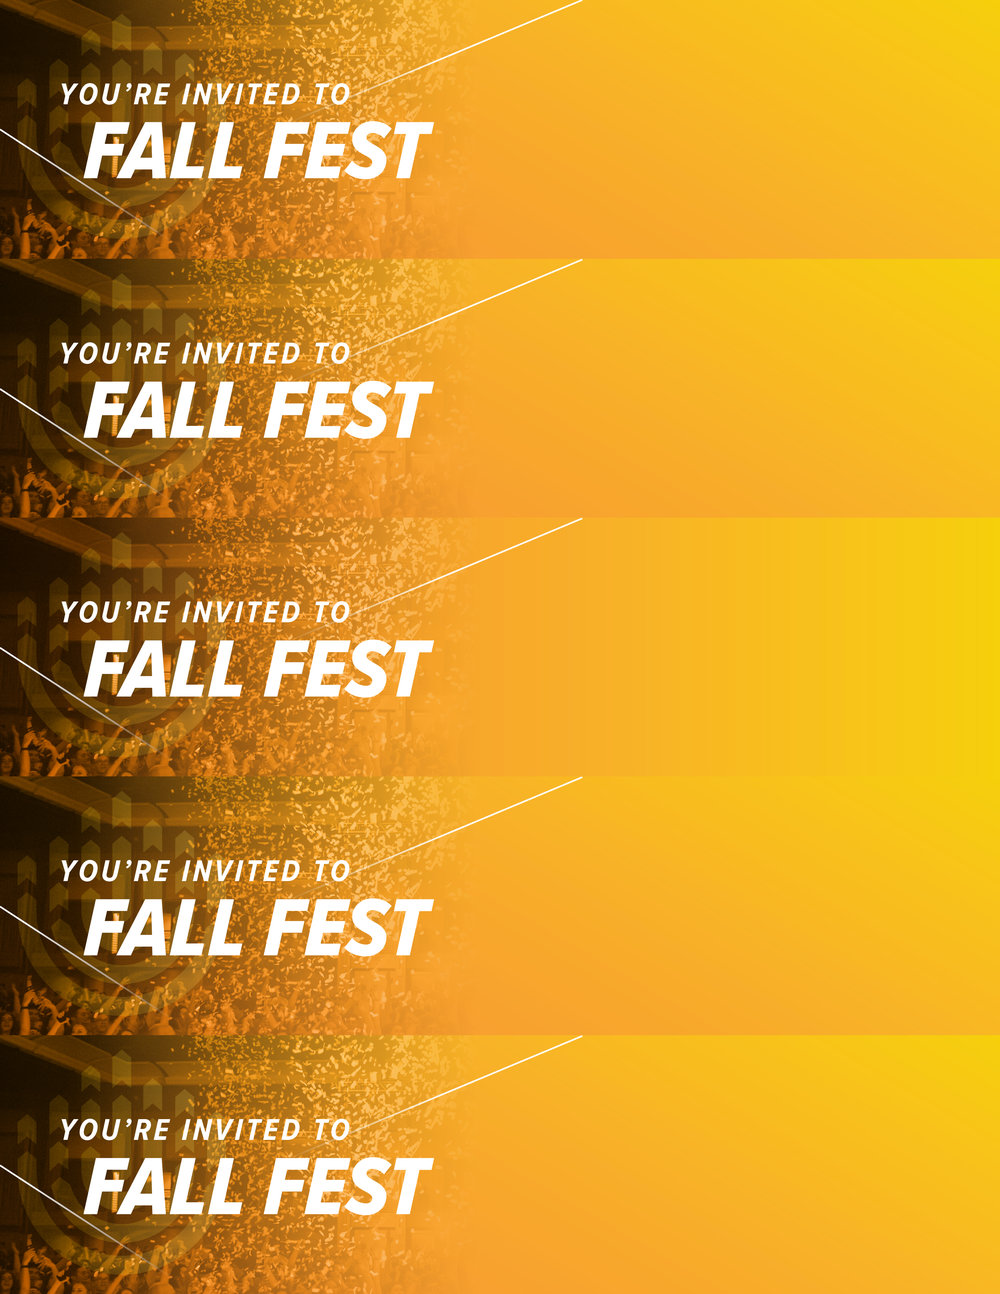 Promo Slips Template   Customize, cut them up and hand them out to all of your friends at school, practice and more to make sure everyone knows when your Fall Fest event is happening.